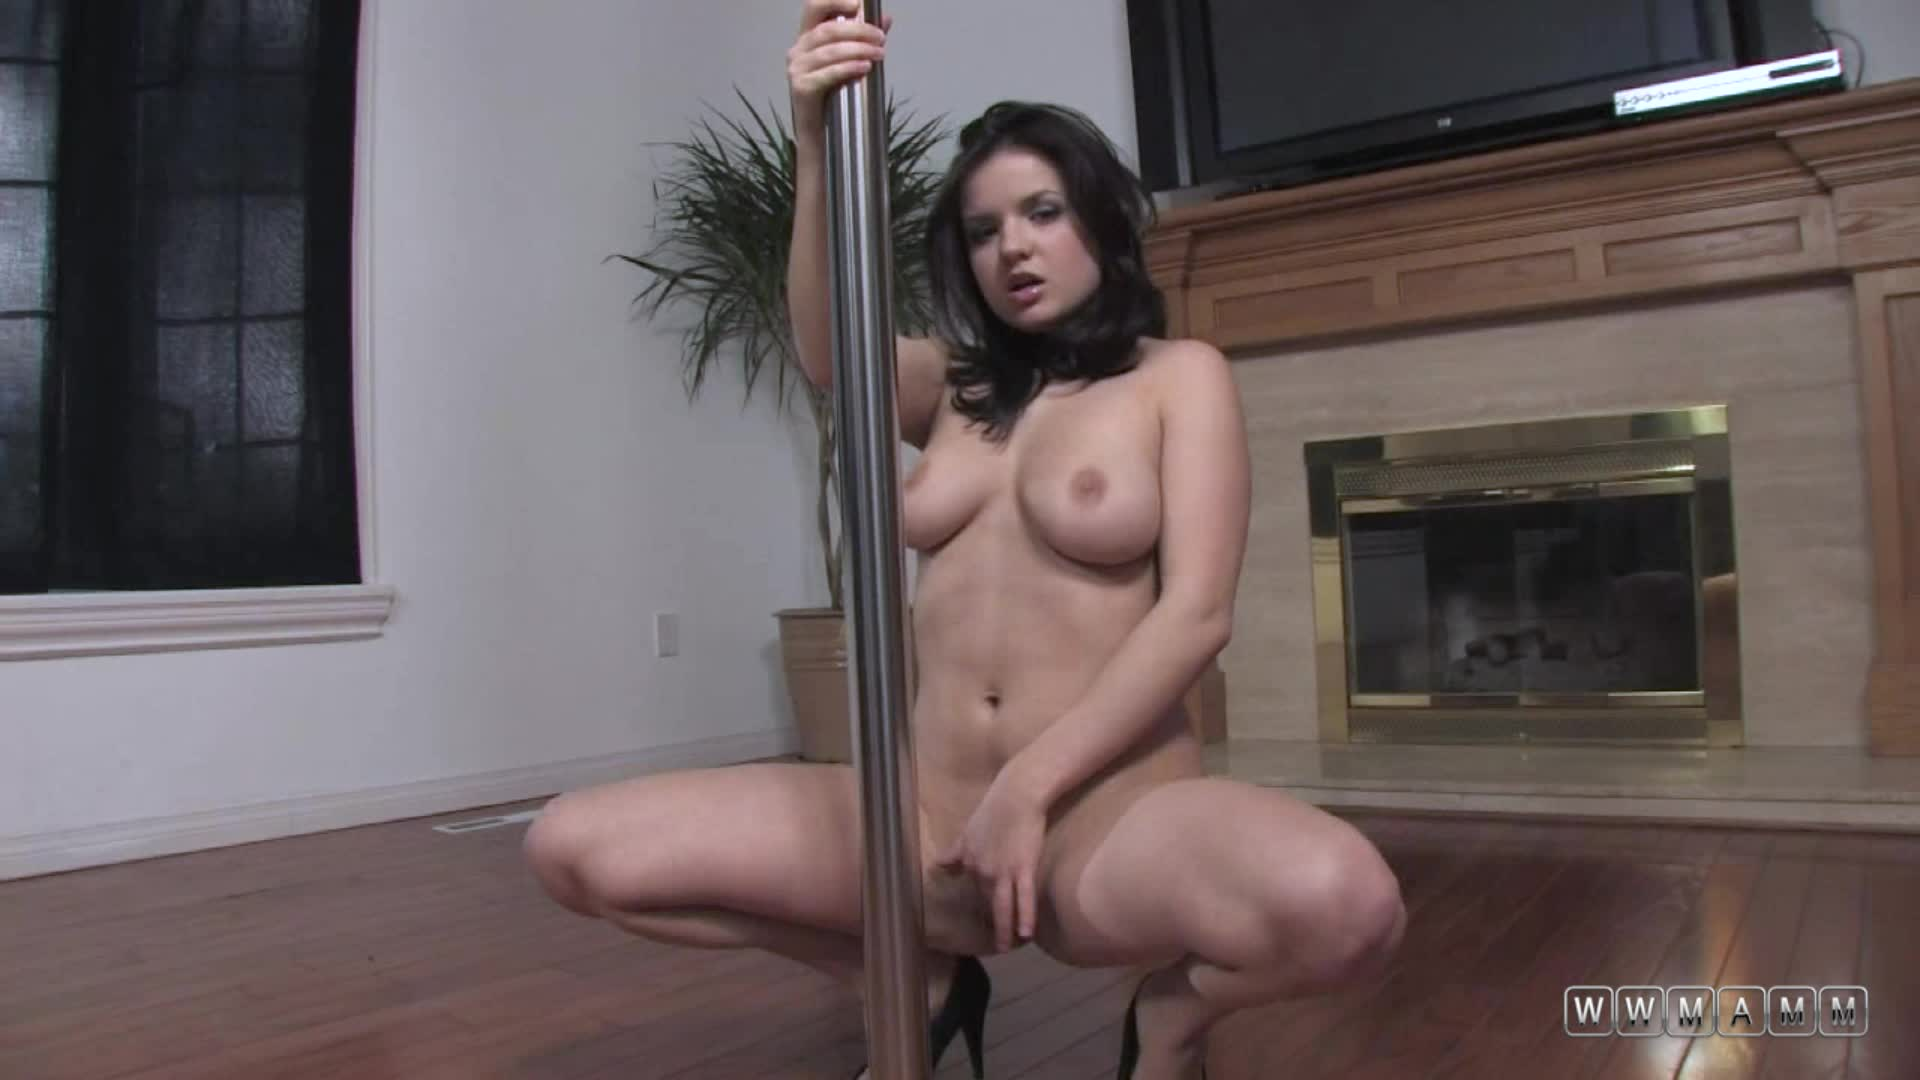 Busty Babe Julie Is Using Her Dancing Pole For Another Purpose